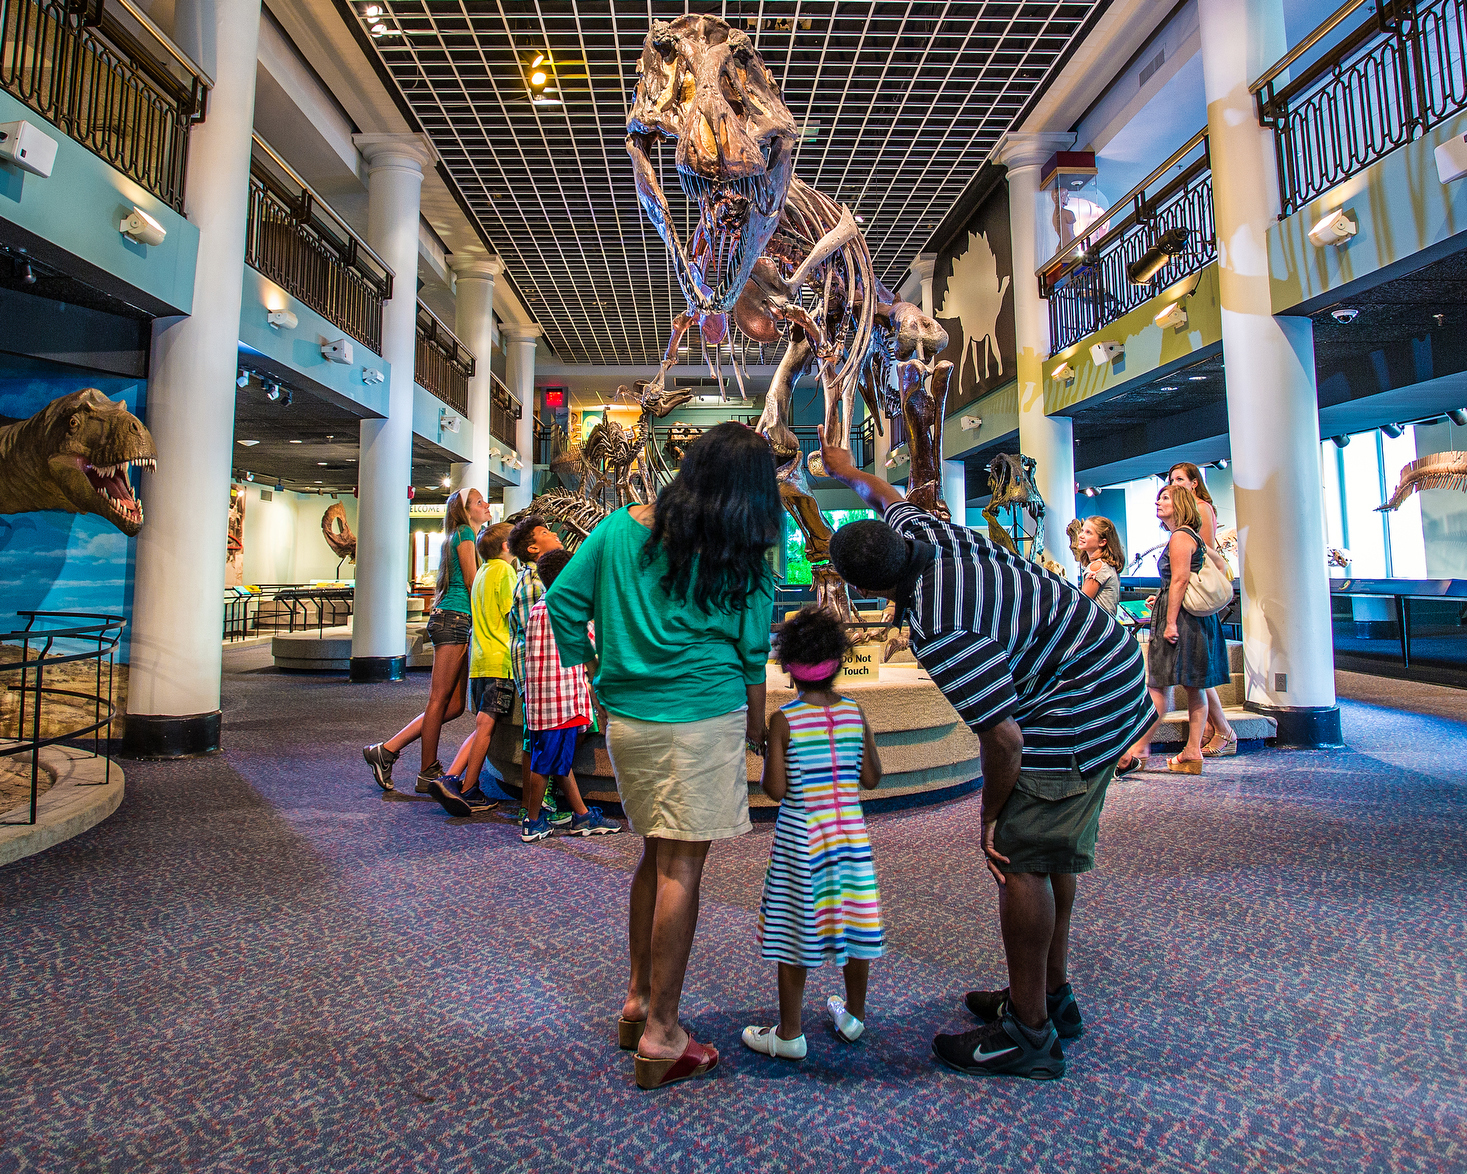 The Academy of Natural Sciences offers free admission for dads who want to dive into exhibitions full of dinosaurs, live butterflies, and more with their kids this Father´s Day.